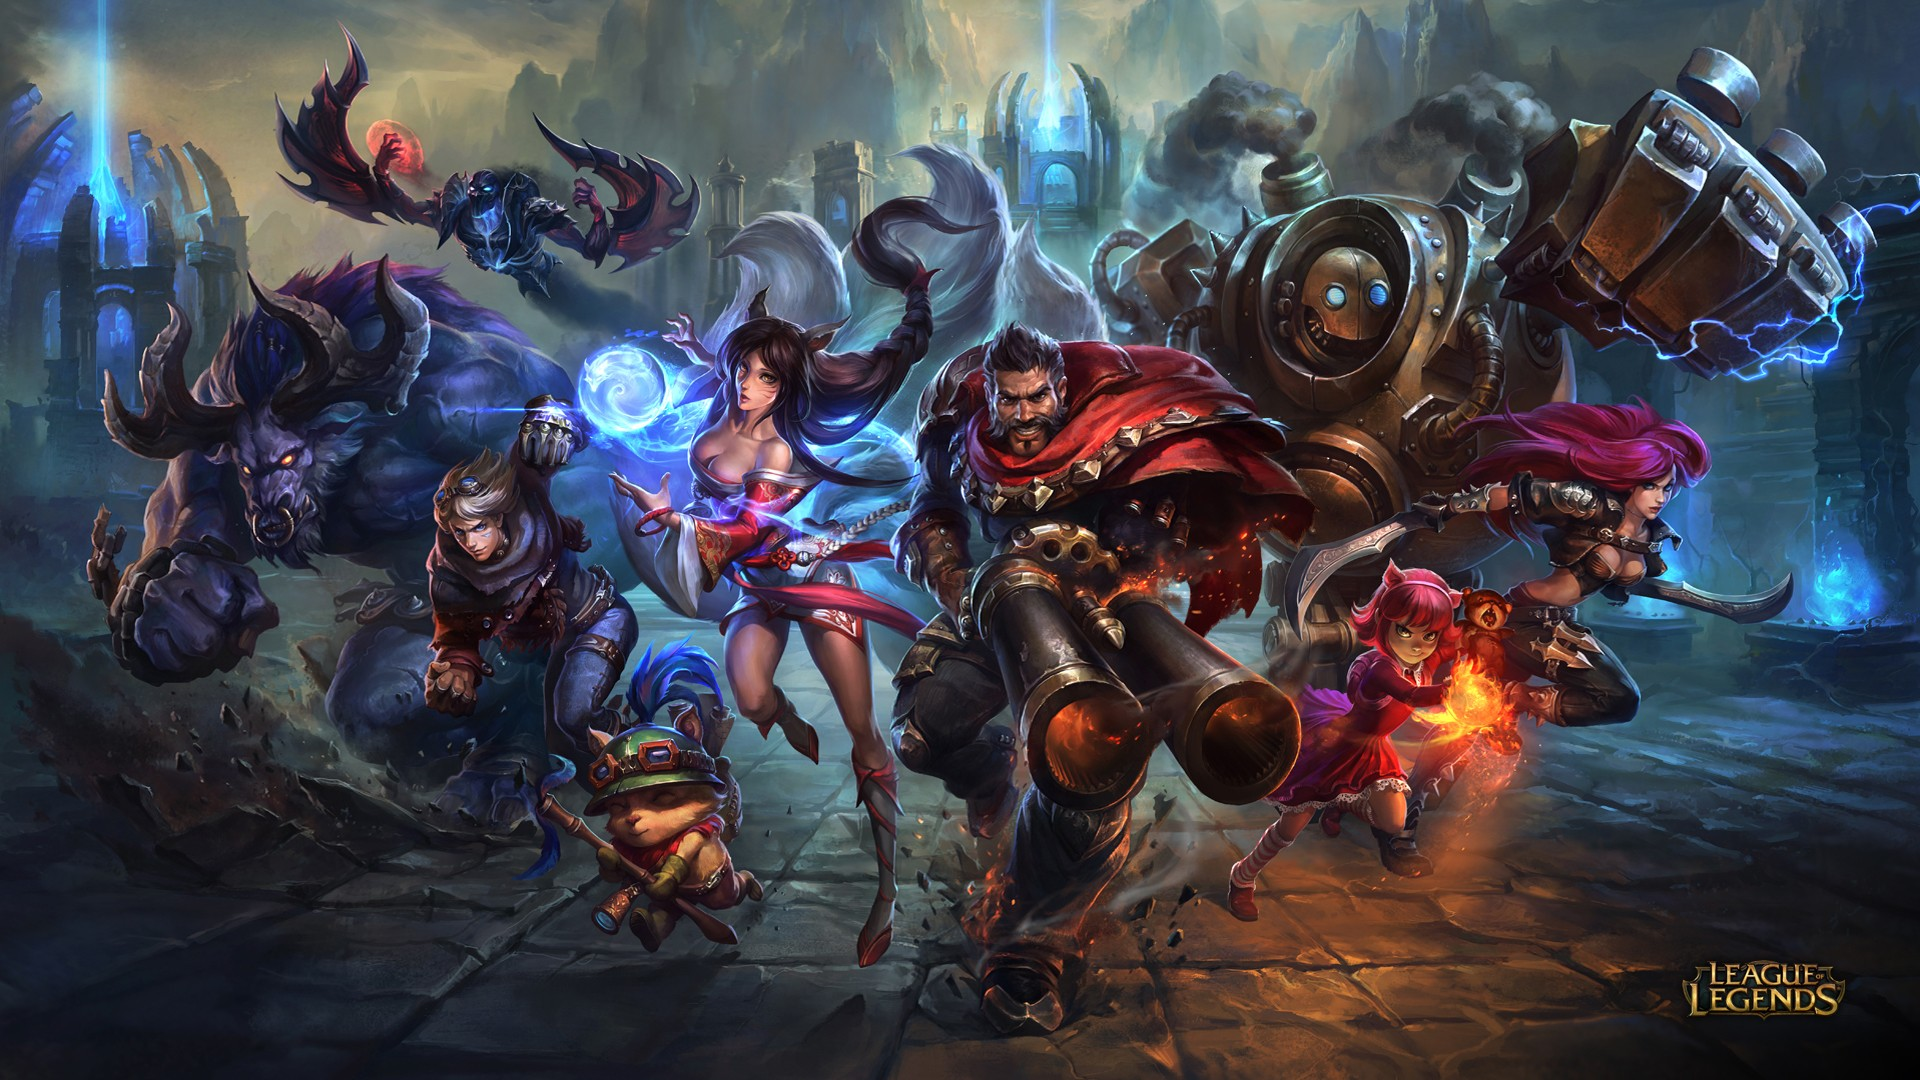 General 1920x1080 League of Legends artwork video games